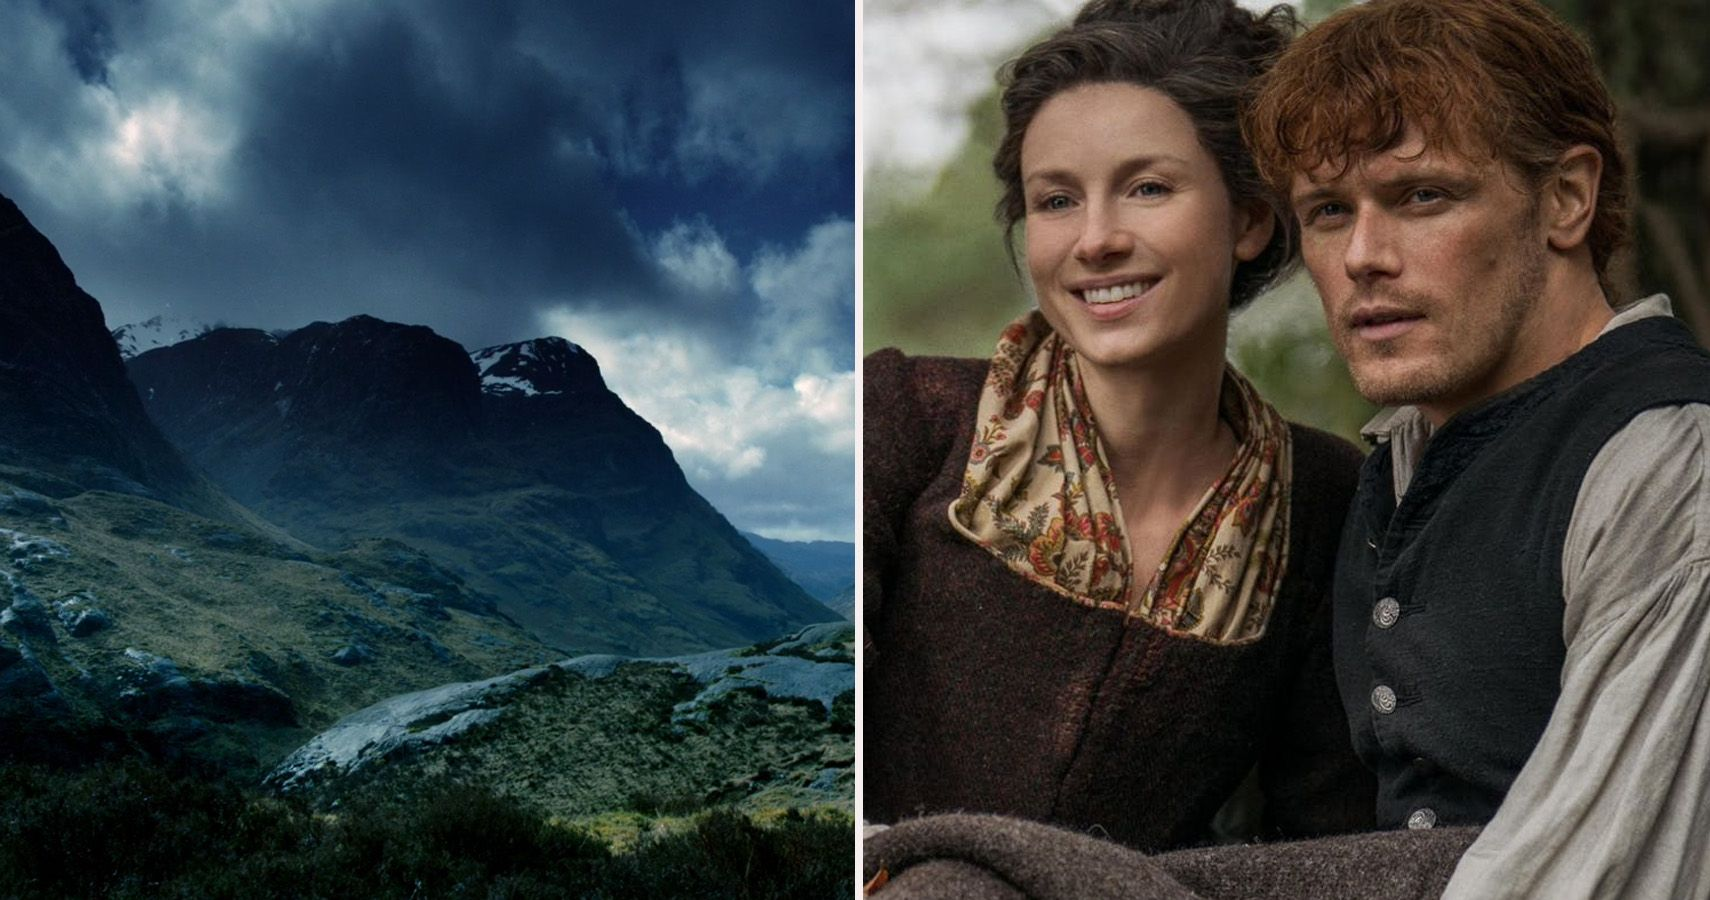 10 Things You Never Knew About Outlander's Theme Song & Intro